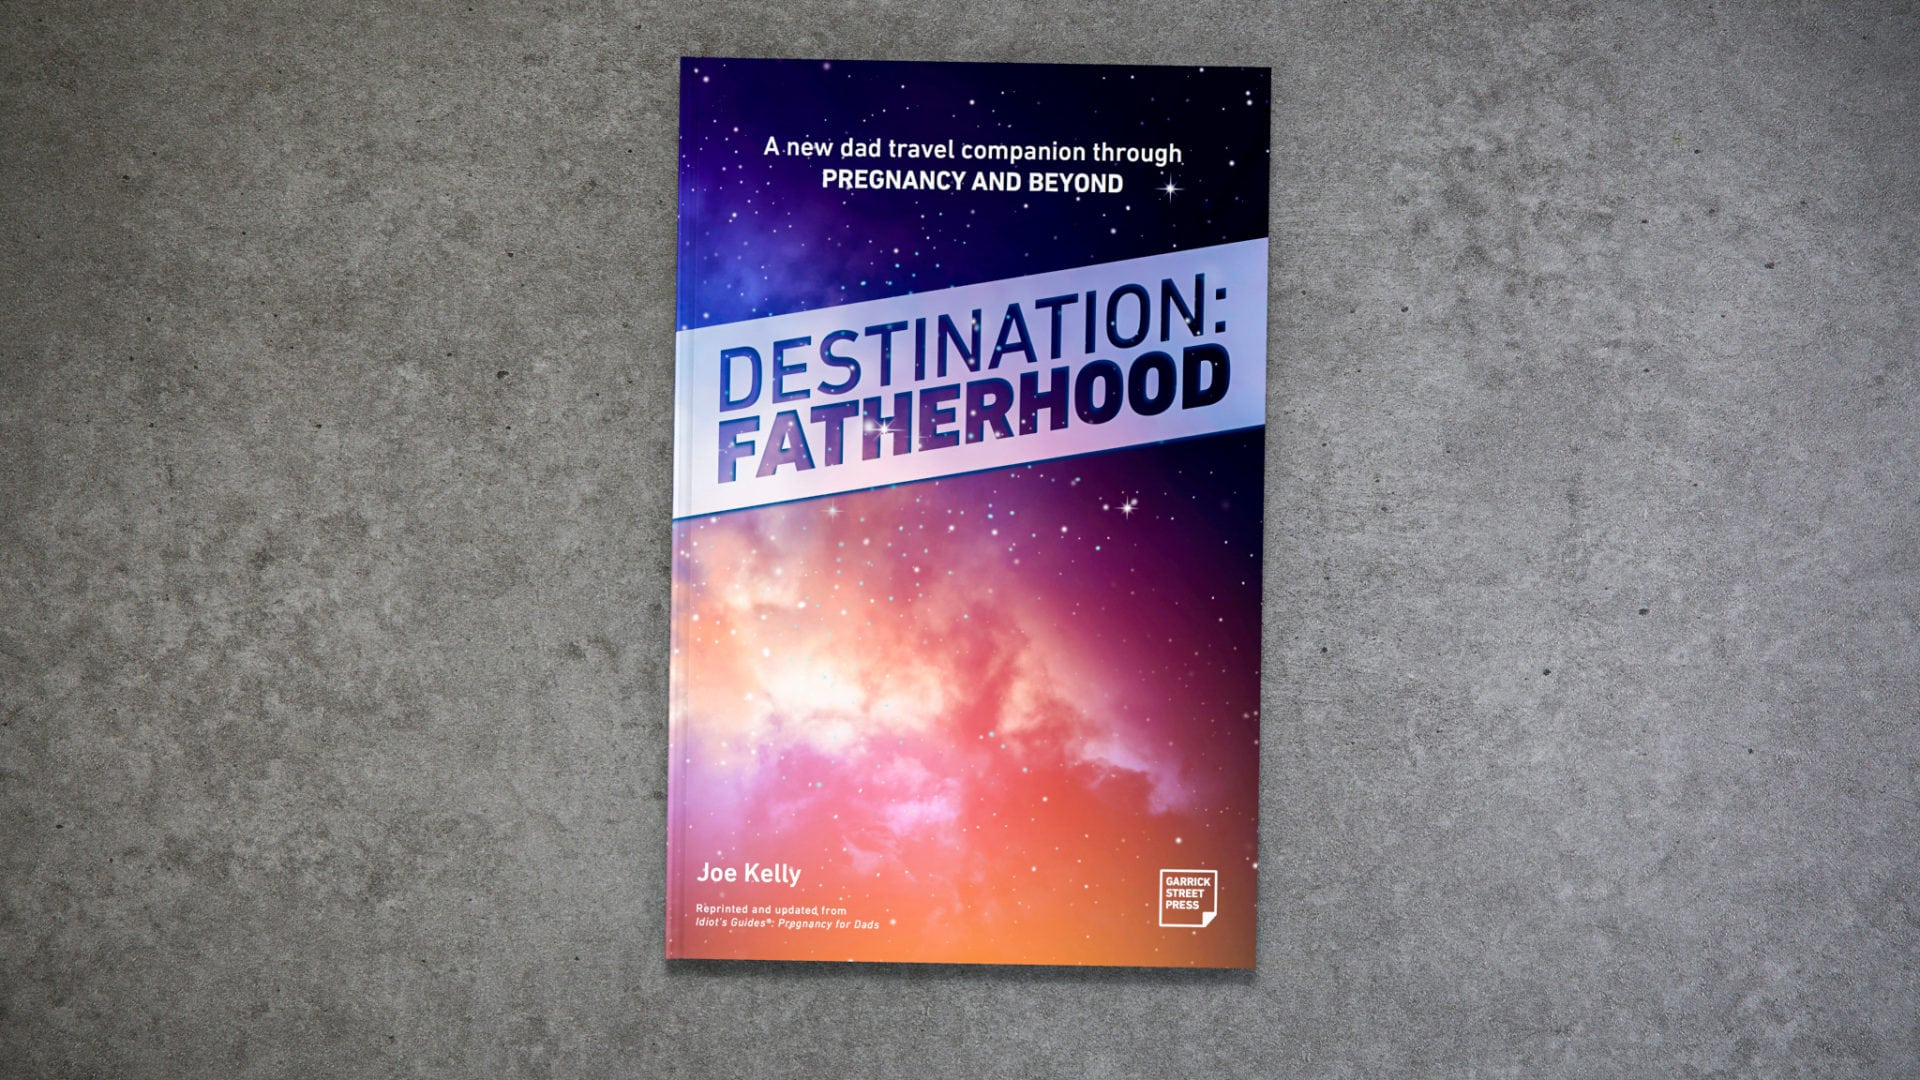 Destination Fatherhood on grey weathered tabletop.